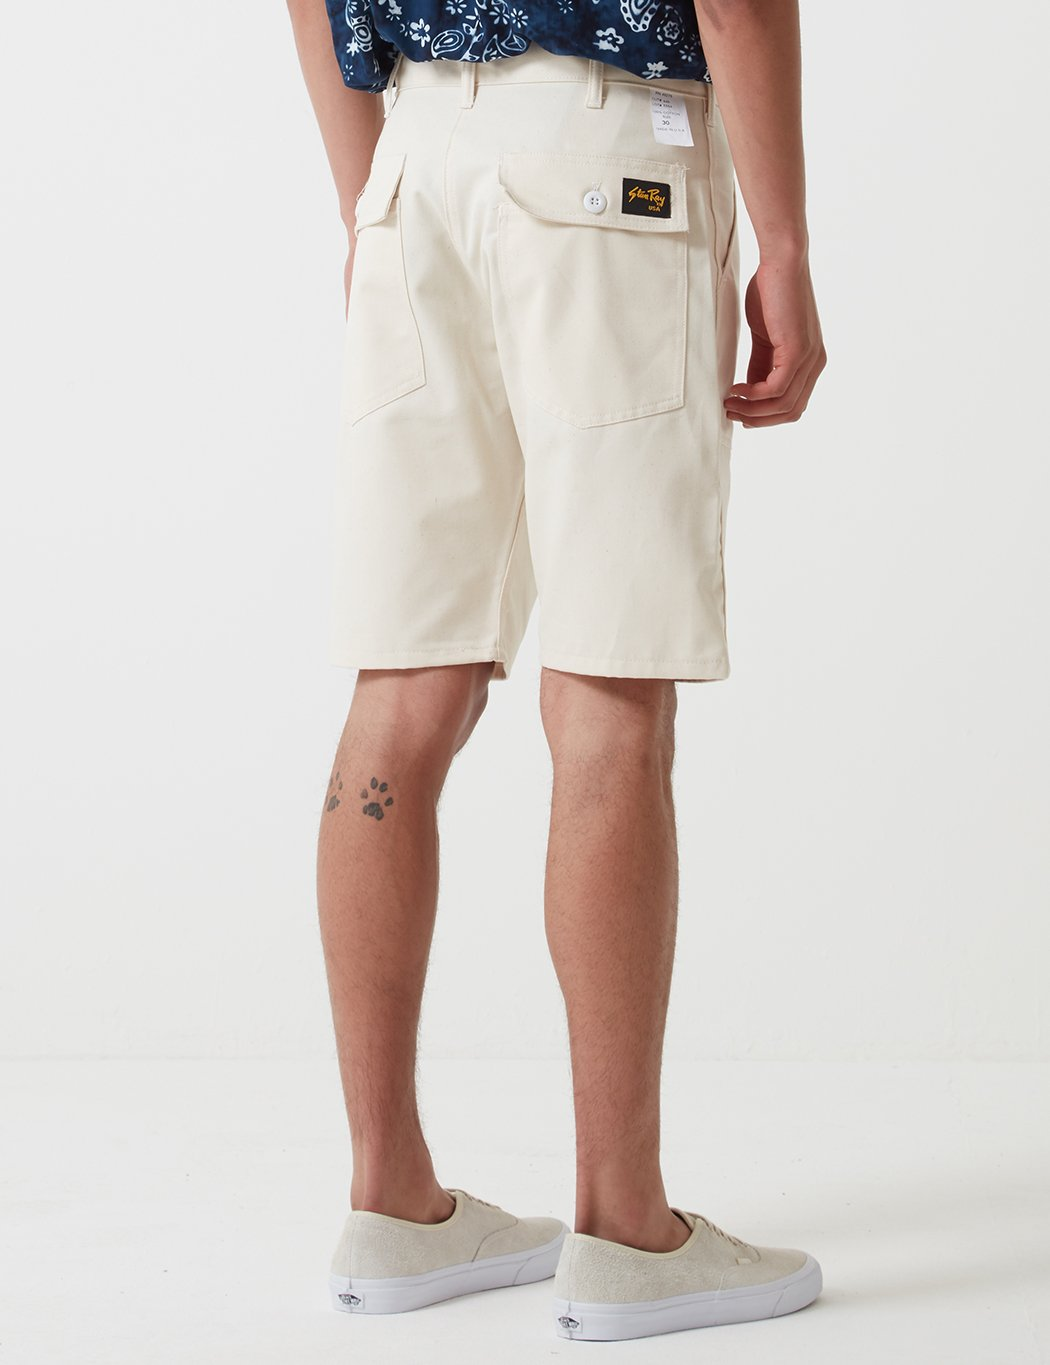 Stan Ray Fatigue Shorts - Natürlicher Drill